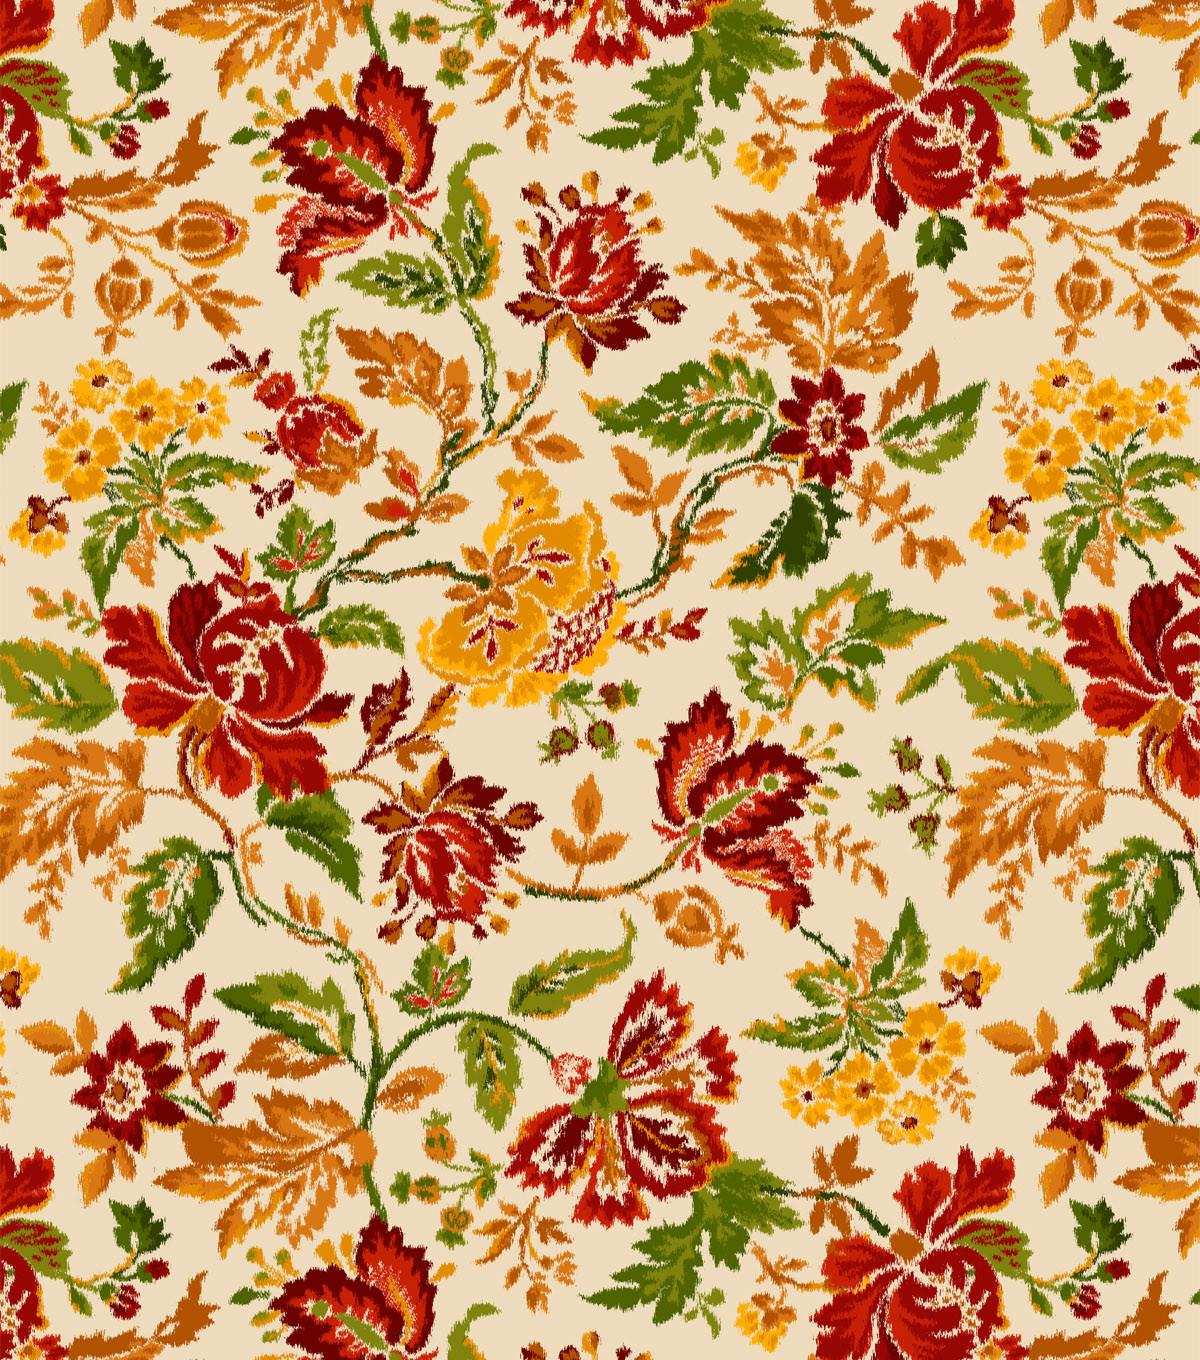 Autumn Inspirations Harvest Fabric Crewel Ivory Ann